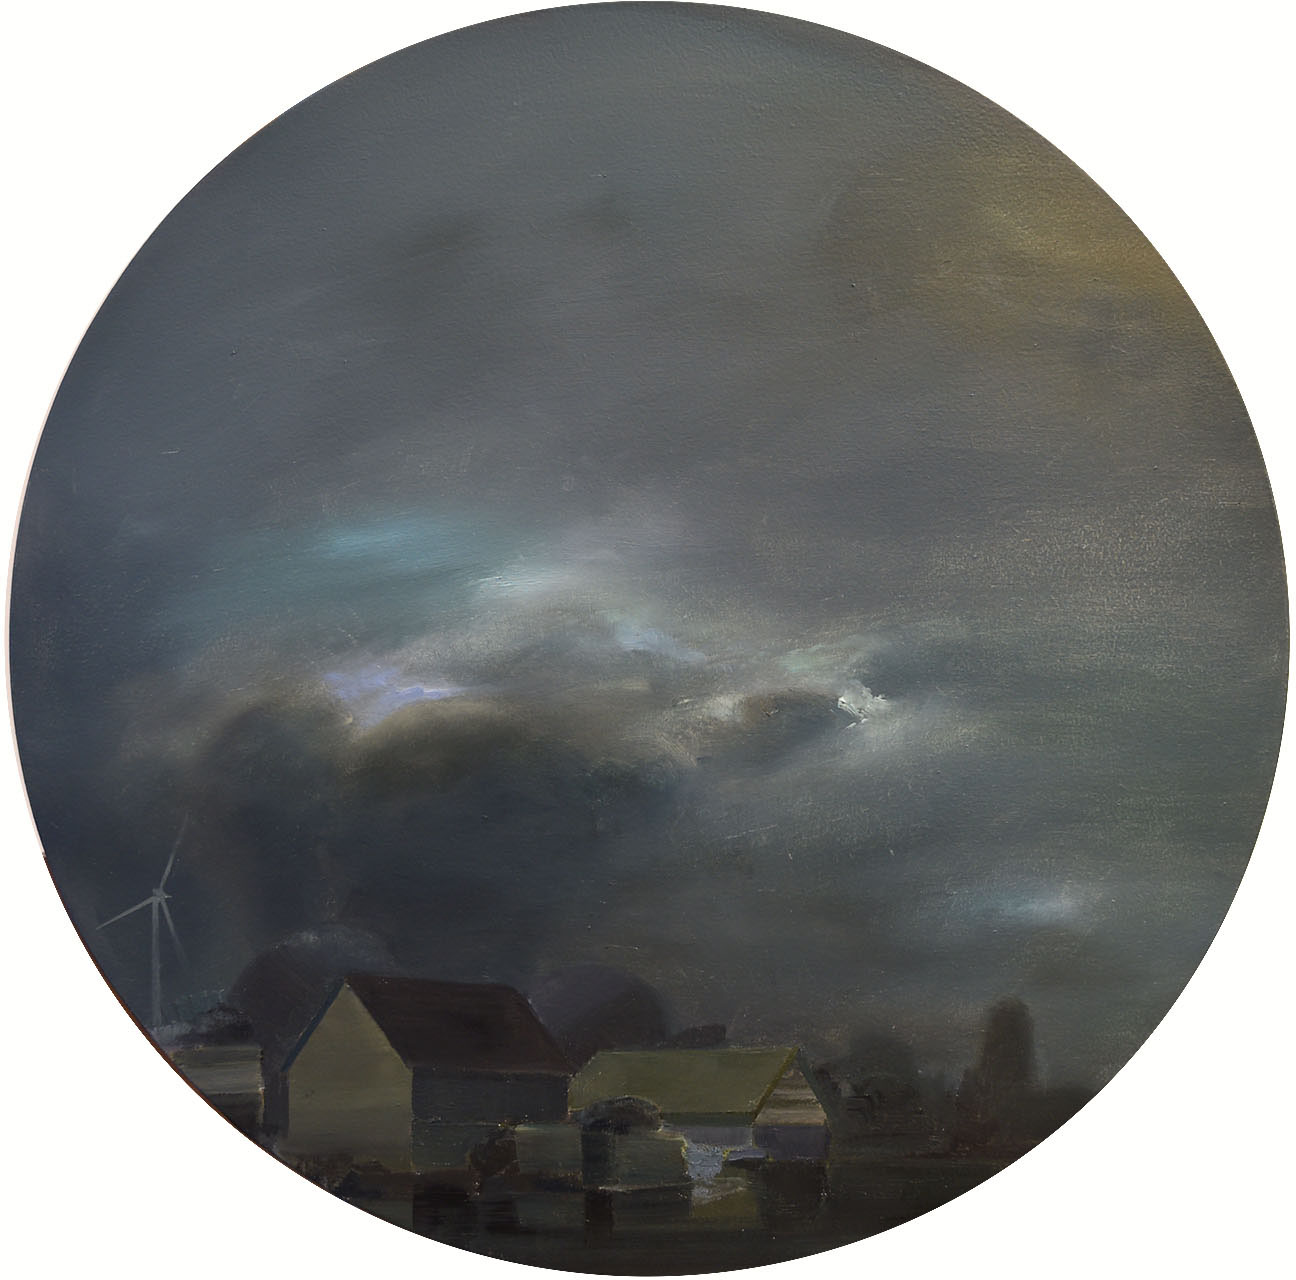 Ulf Puder 2018